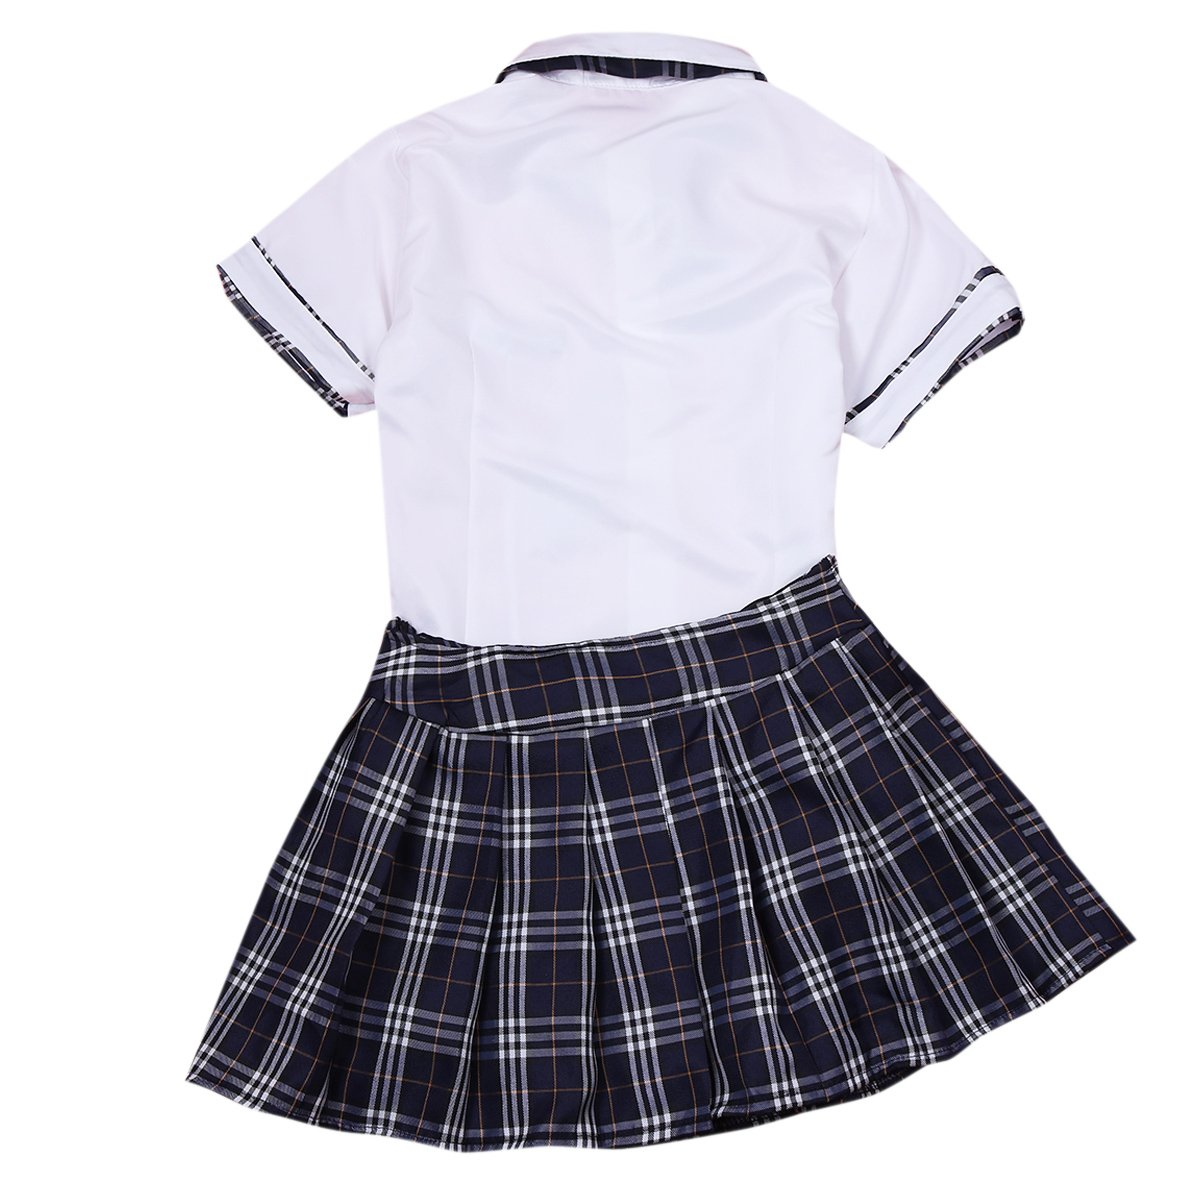 DRGE Pretty Fashion Girl JK Uniform Set Japanese Schoolgirl Uniform Skater White Shirt with High Waist Plaid Pleated Skirt Set,BAI MING,XS